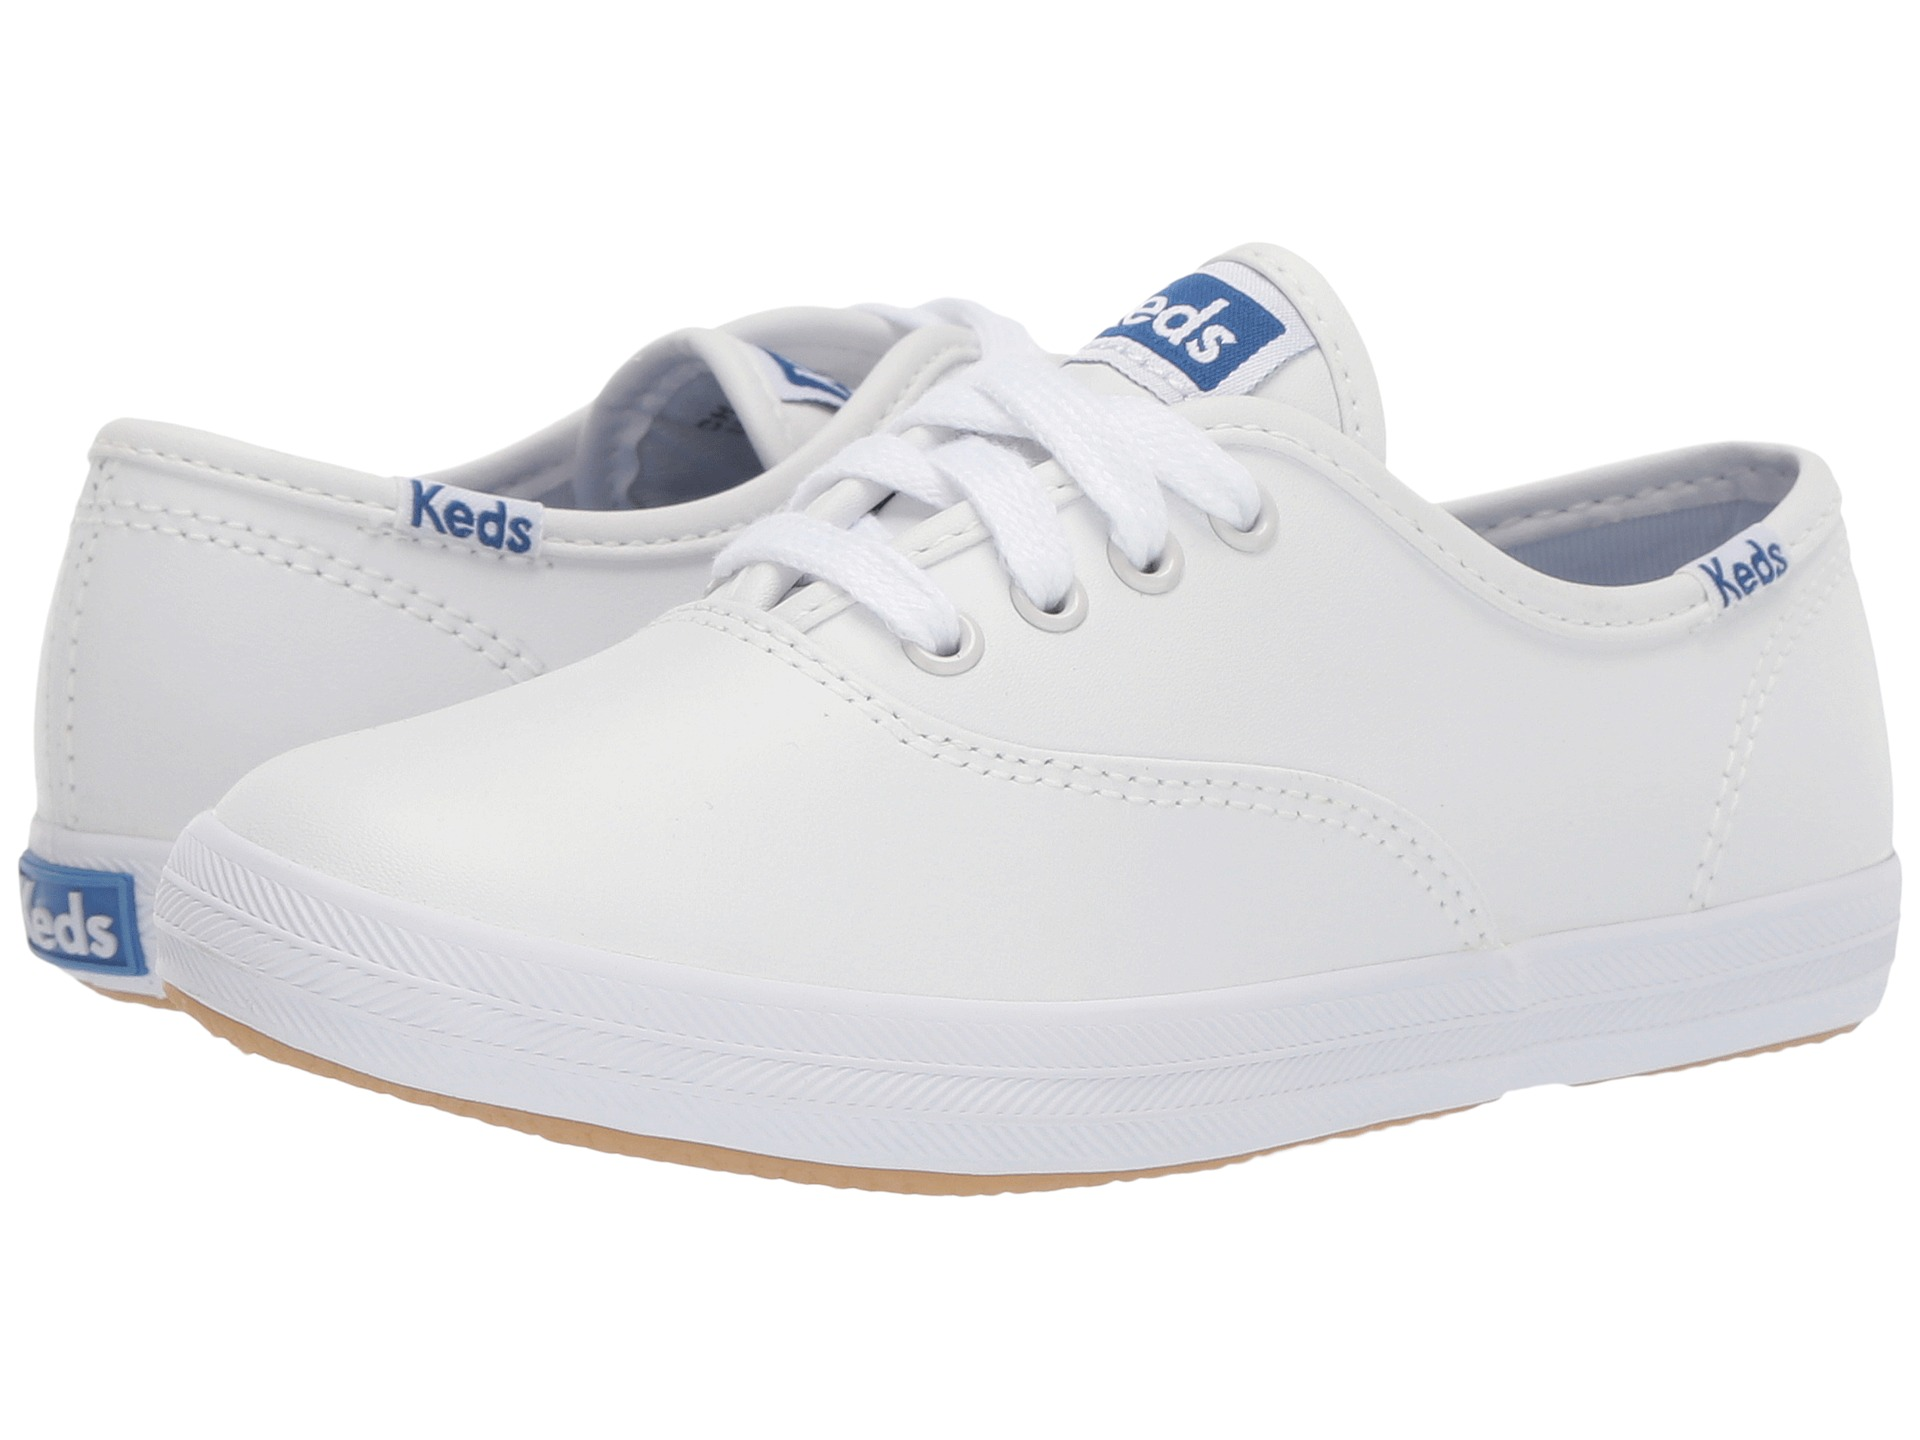 Keds White Women Leather Shoes